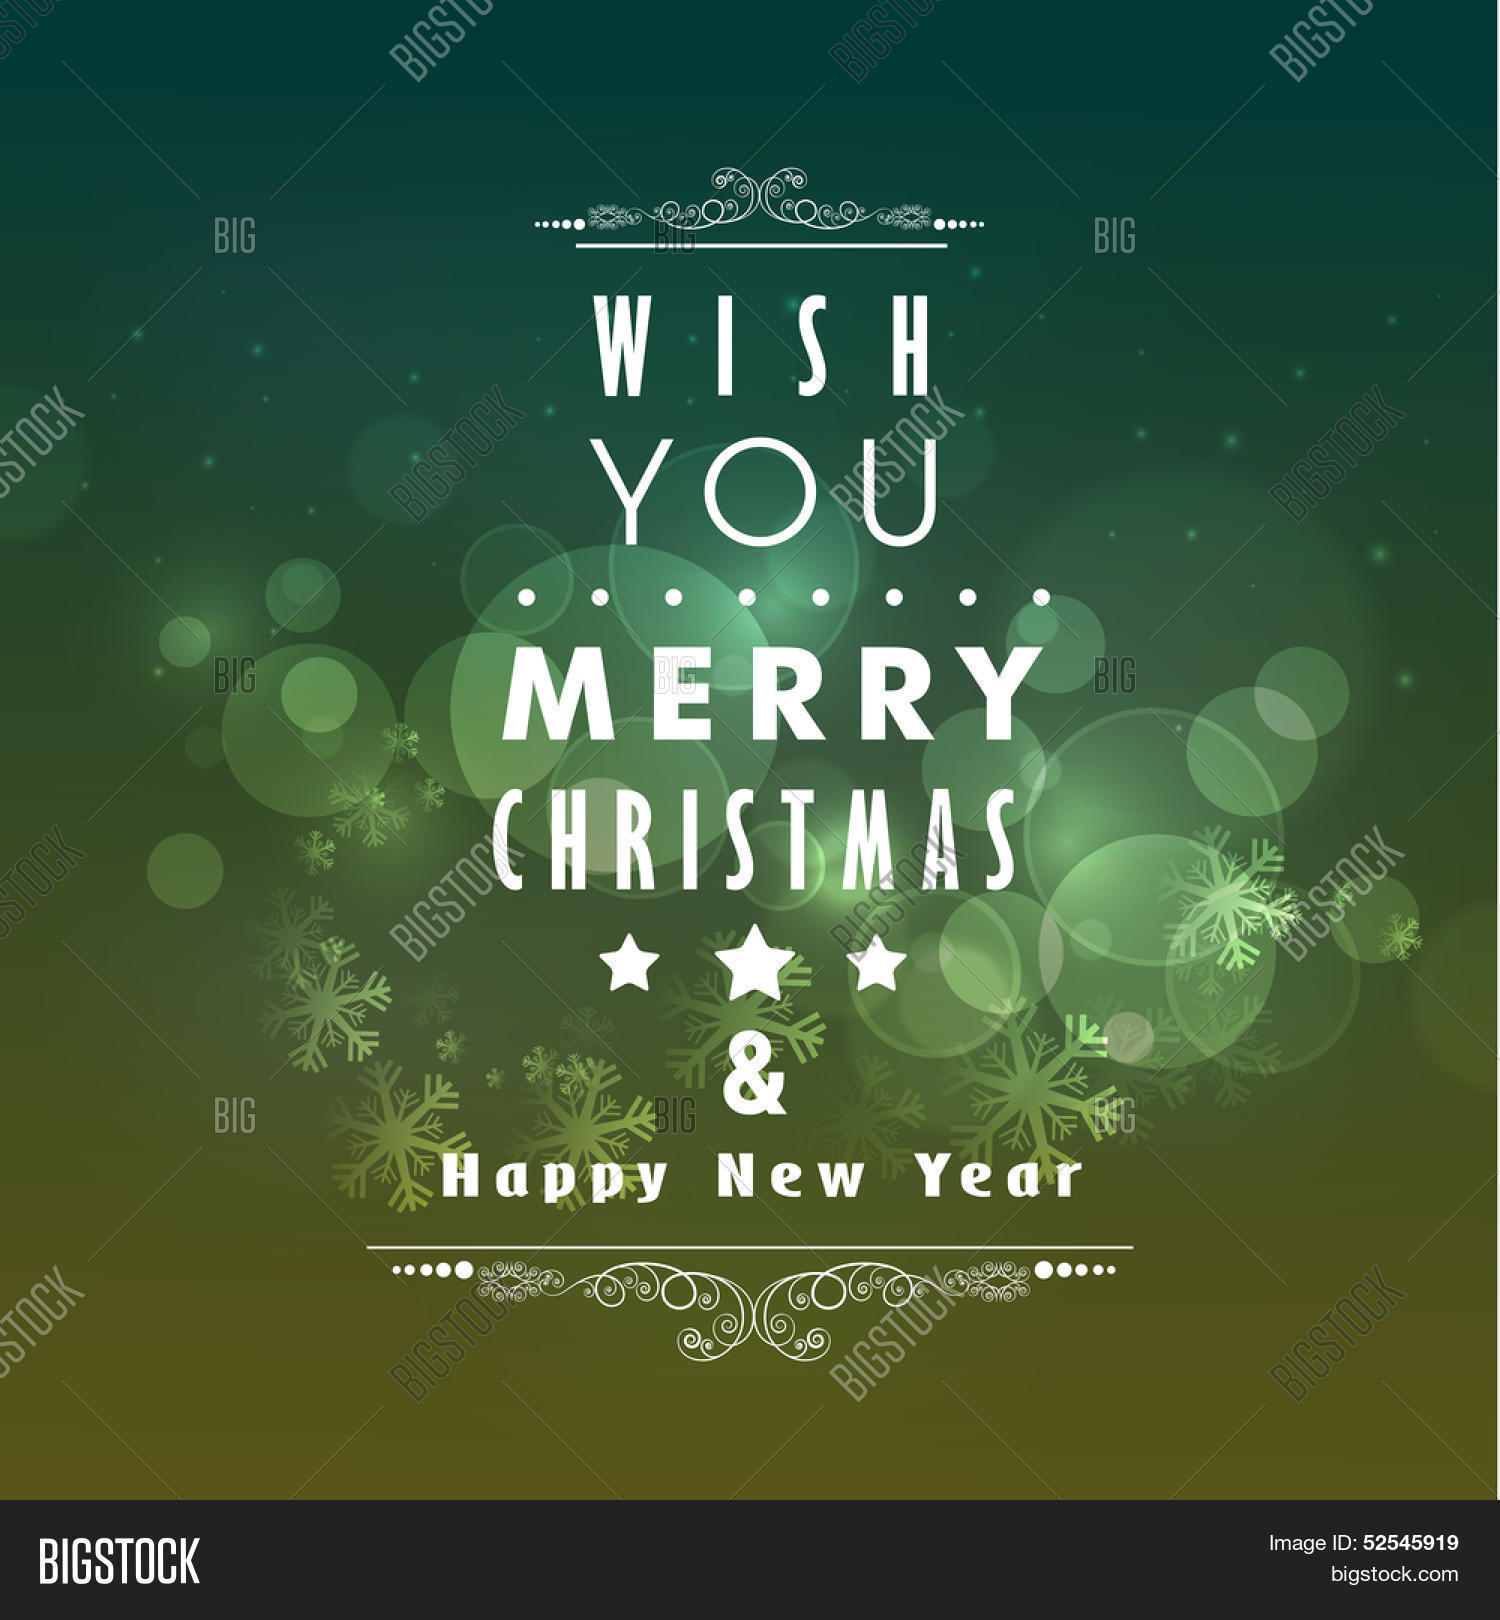 merry christmas and happy new year celebration party poster merry christmas and happy new year celebration party poster banner or flyer on snowflakes decorated